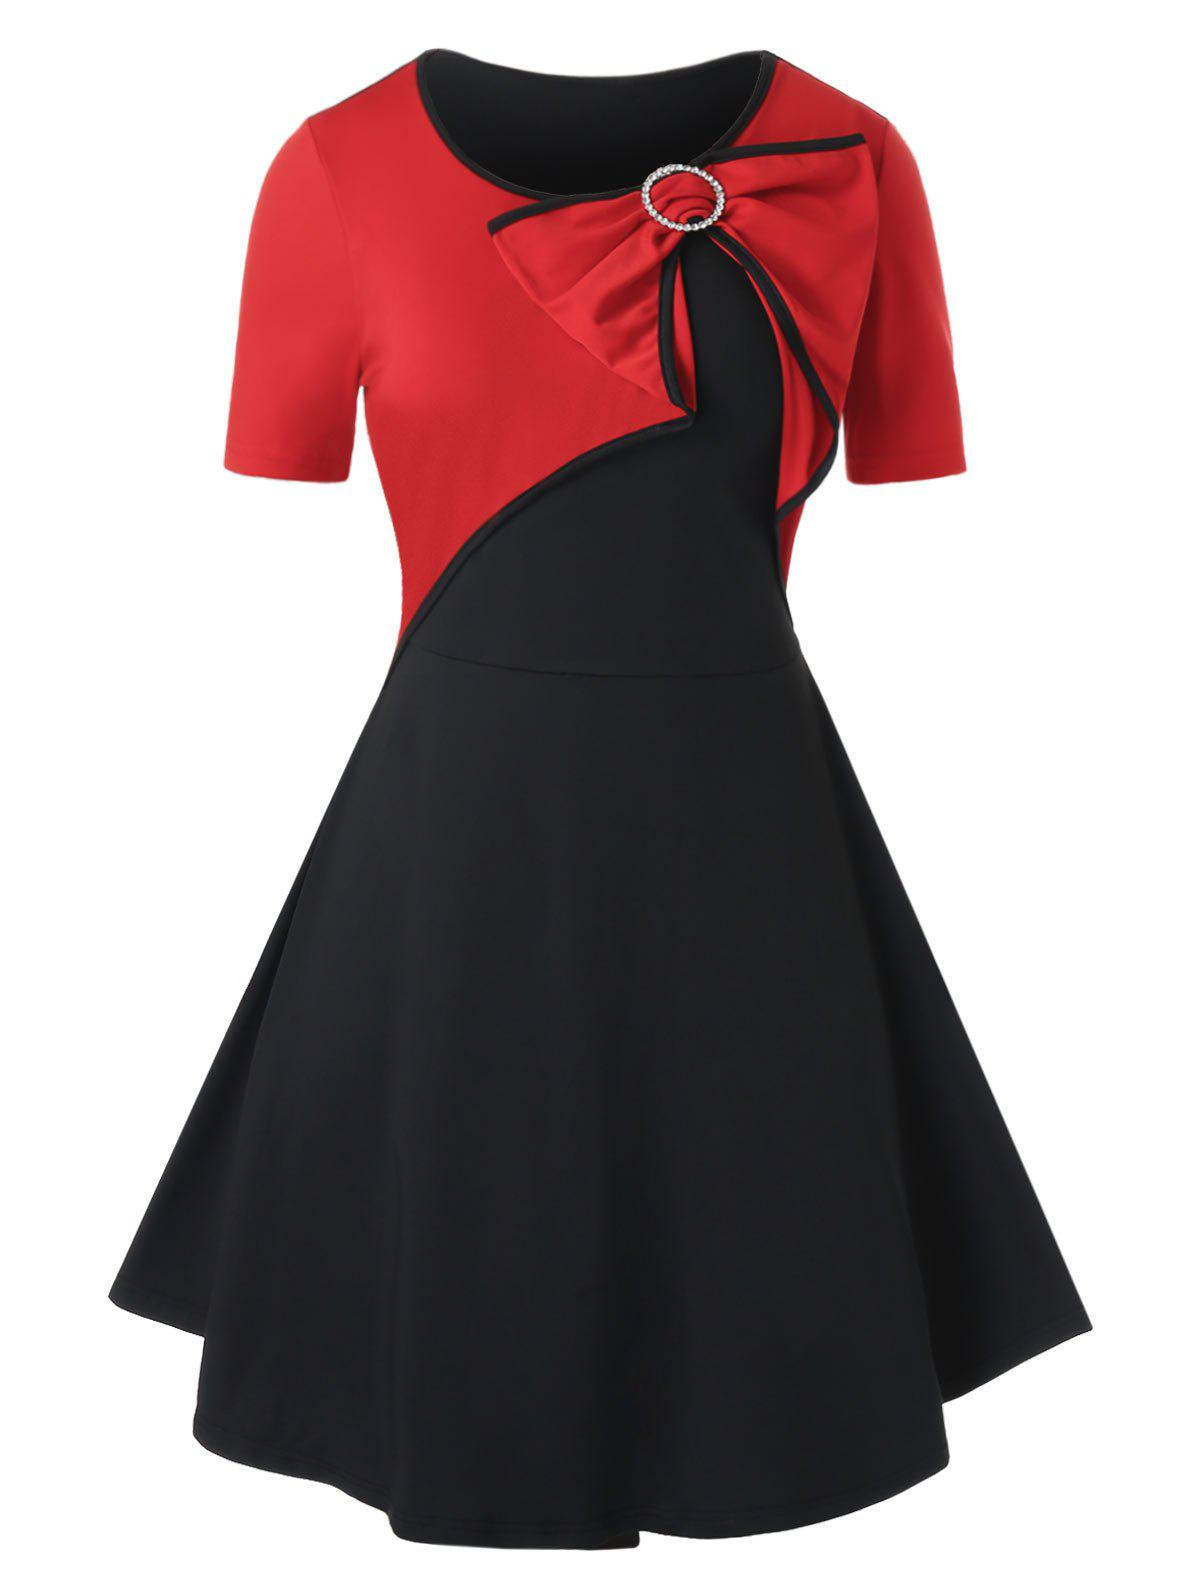 Plus Size Bowknot Two Tone Piping Dress - RED 4X